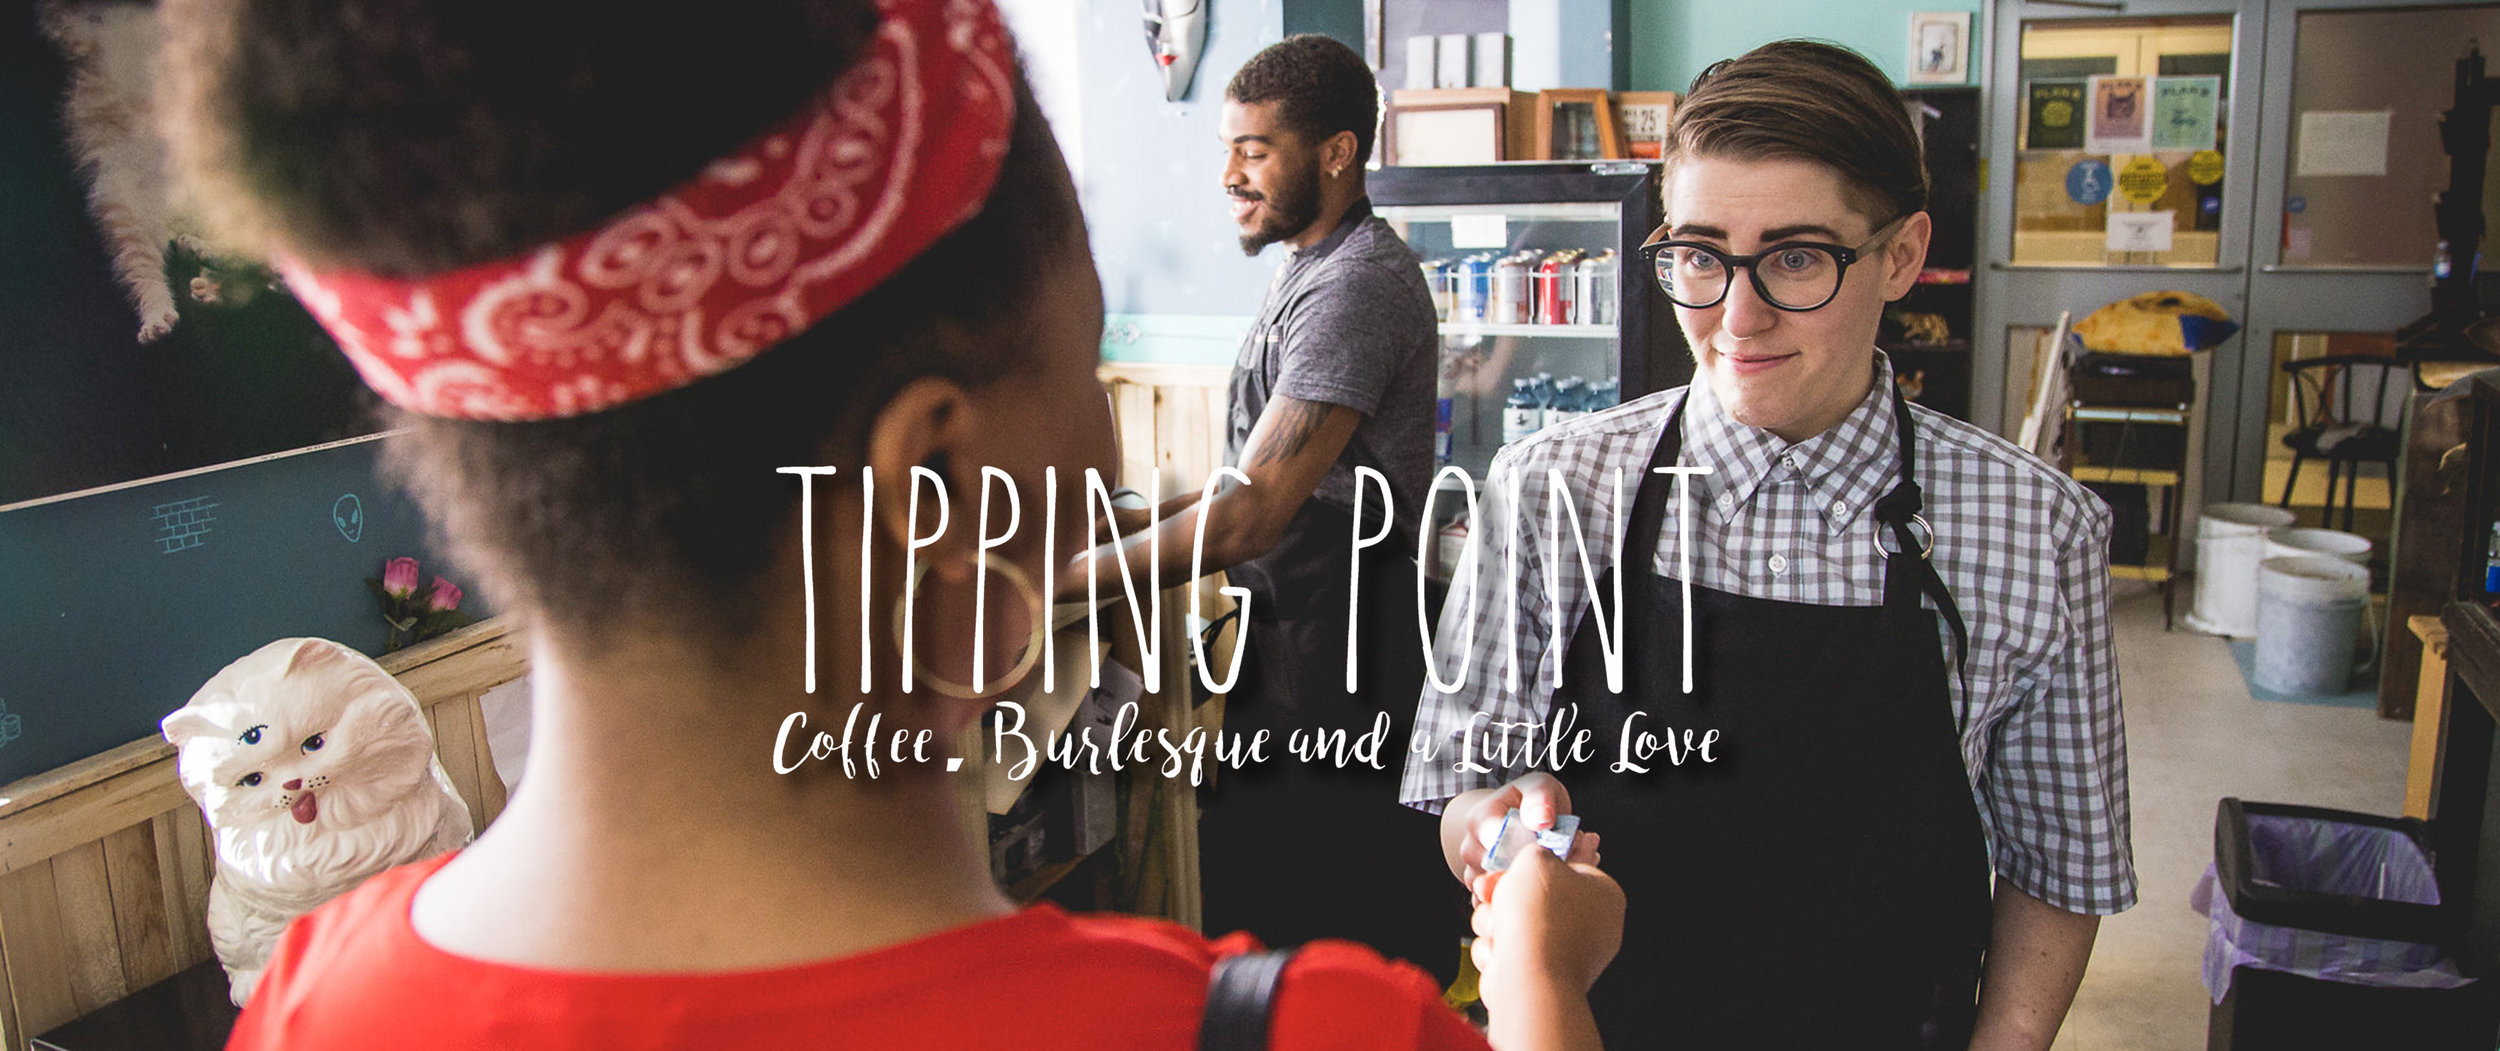 Tipping Point Cover.jpg